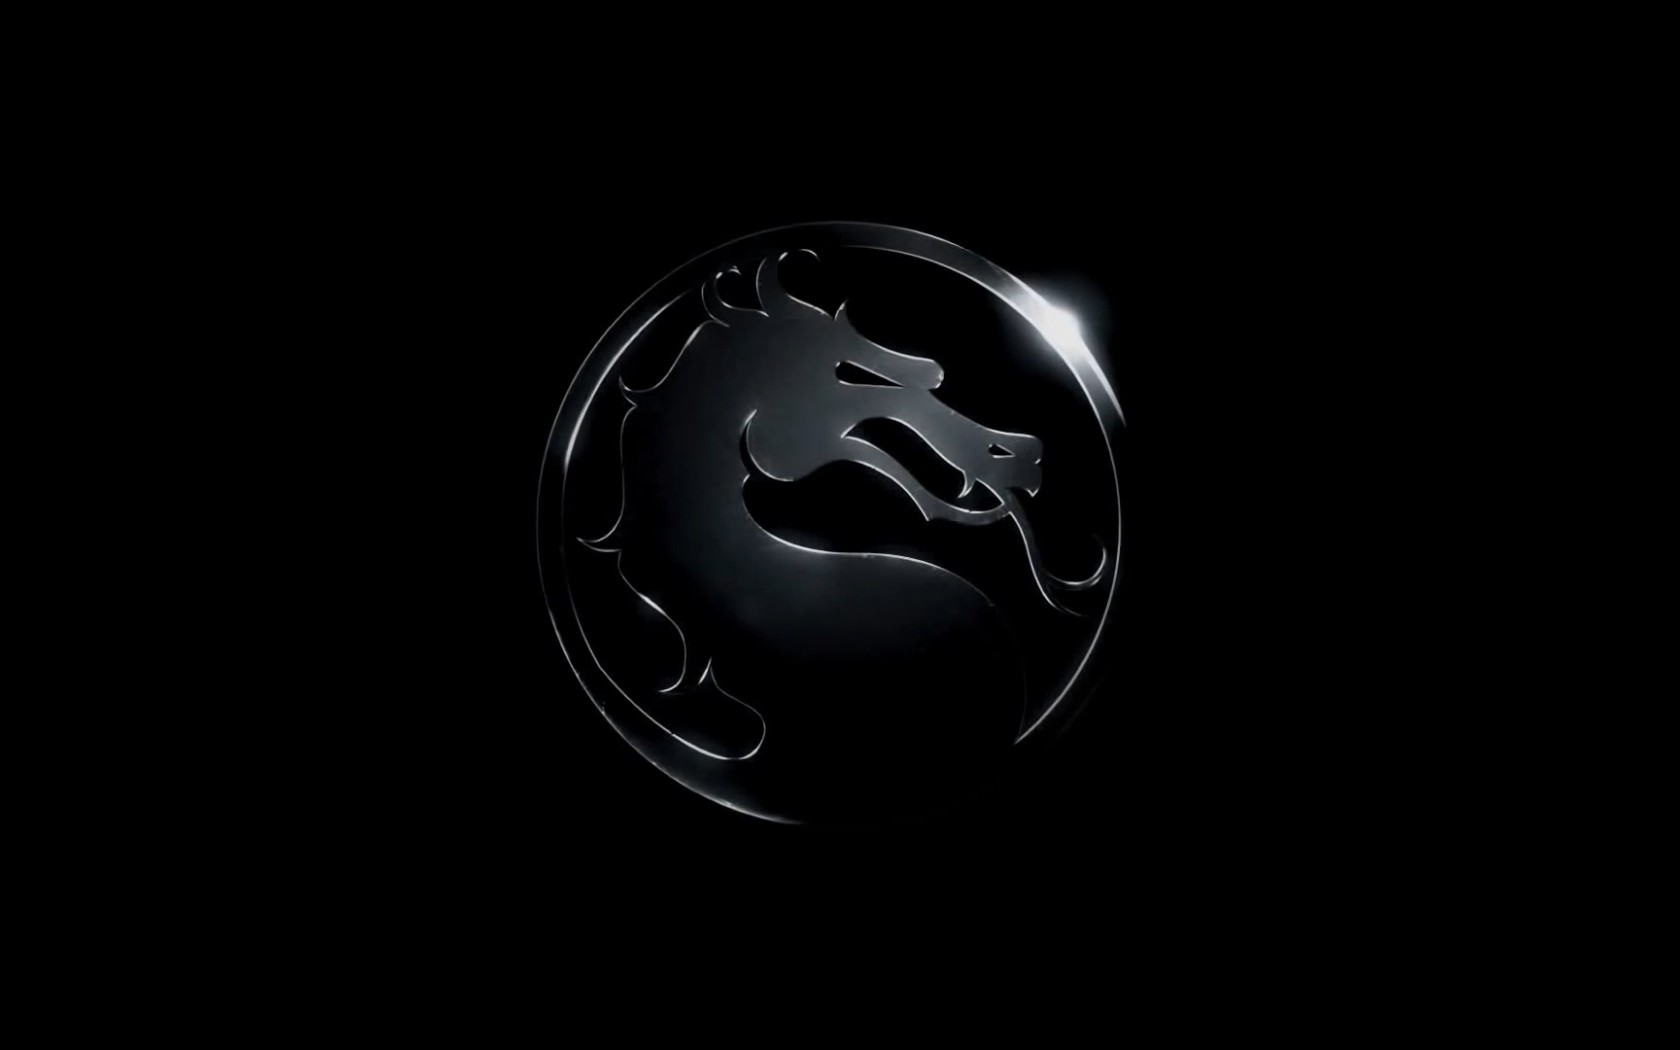 Mortal Kombat wallpaper Logo 10